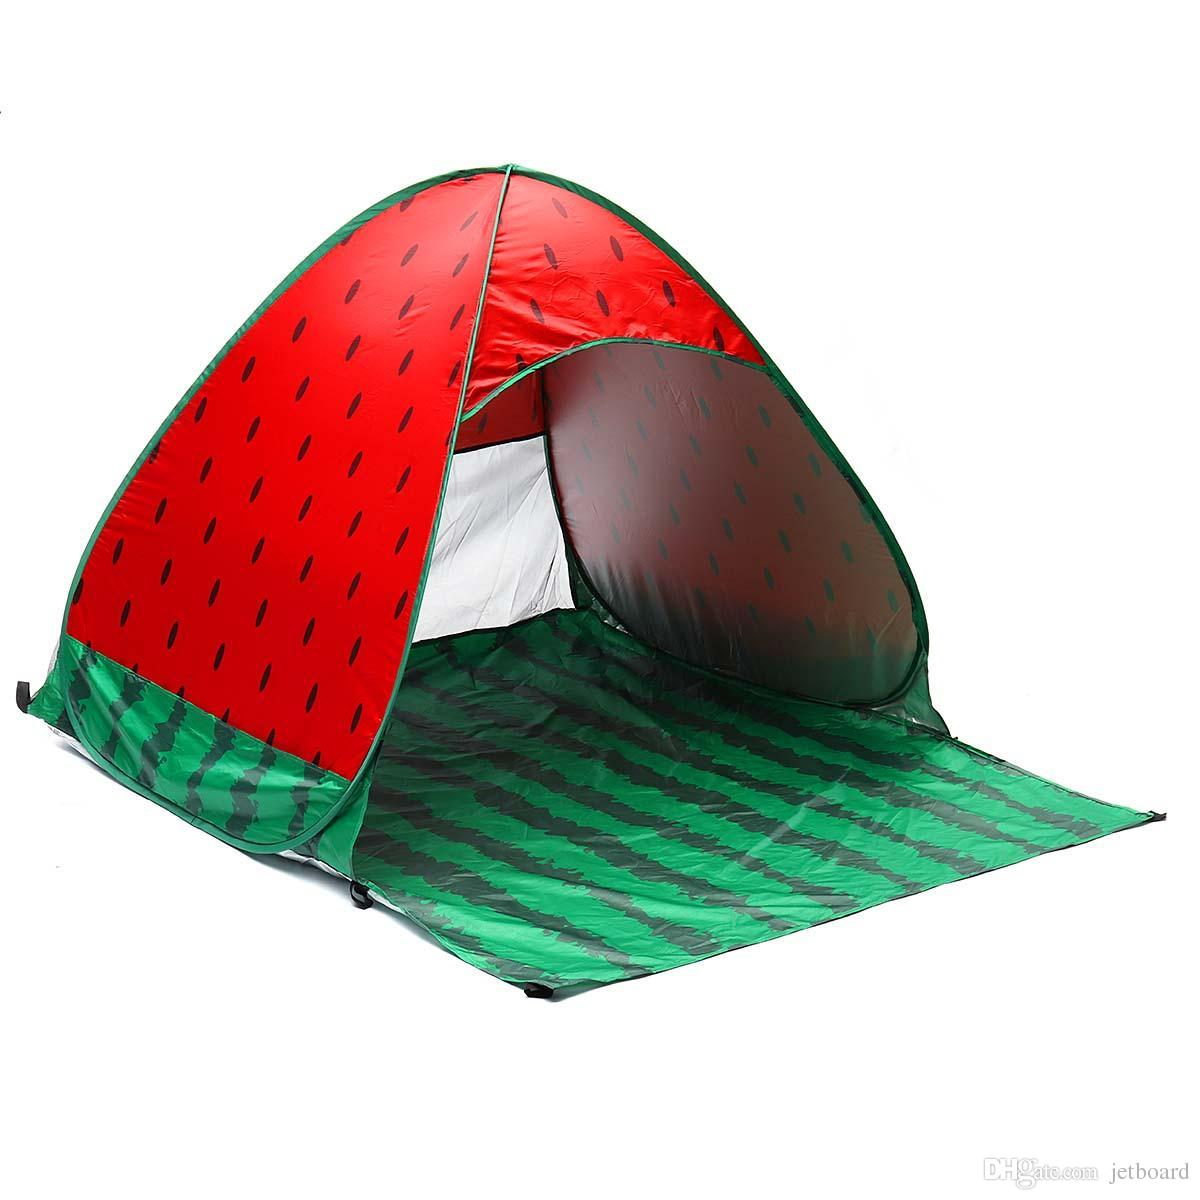 Outdoor 2 3 People Automatic Pop Up Tent Waterproof UV Beach Sunshade Shelter C&ing Popular Pop Up Outdoor Beach Party C&ing Tent Trailer Tents Popup ...  sc 1 st  DHgate & Outdoor 2 3 People Automatic Pop Up Tent Waterproof UV Beach ...